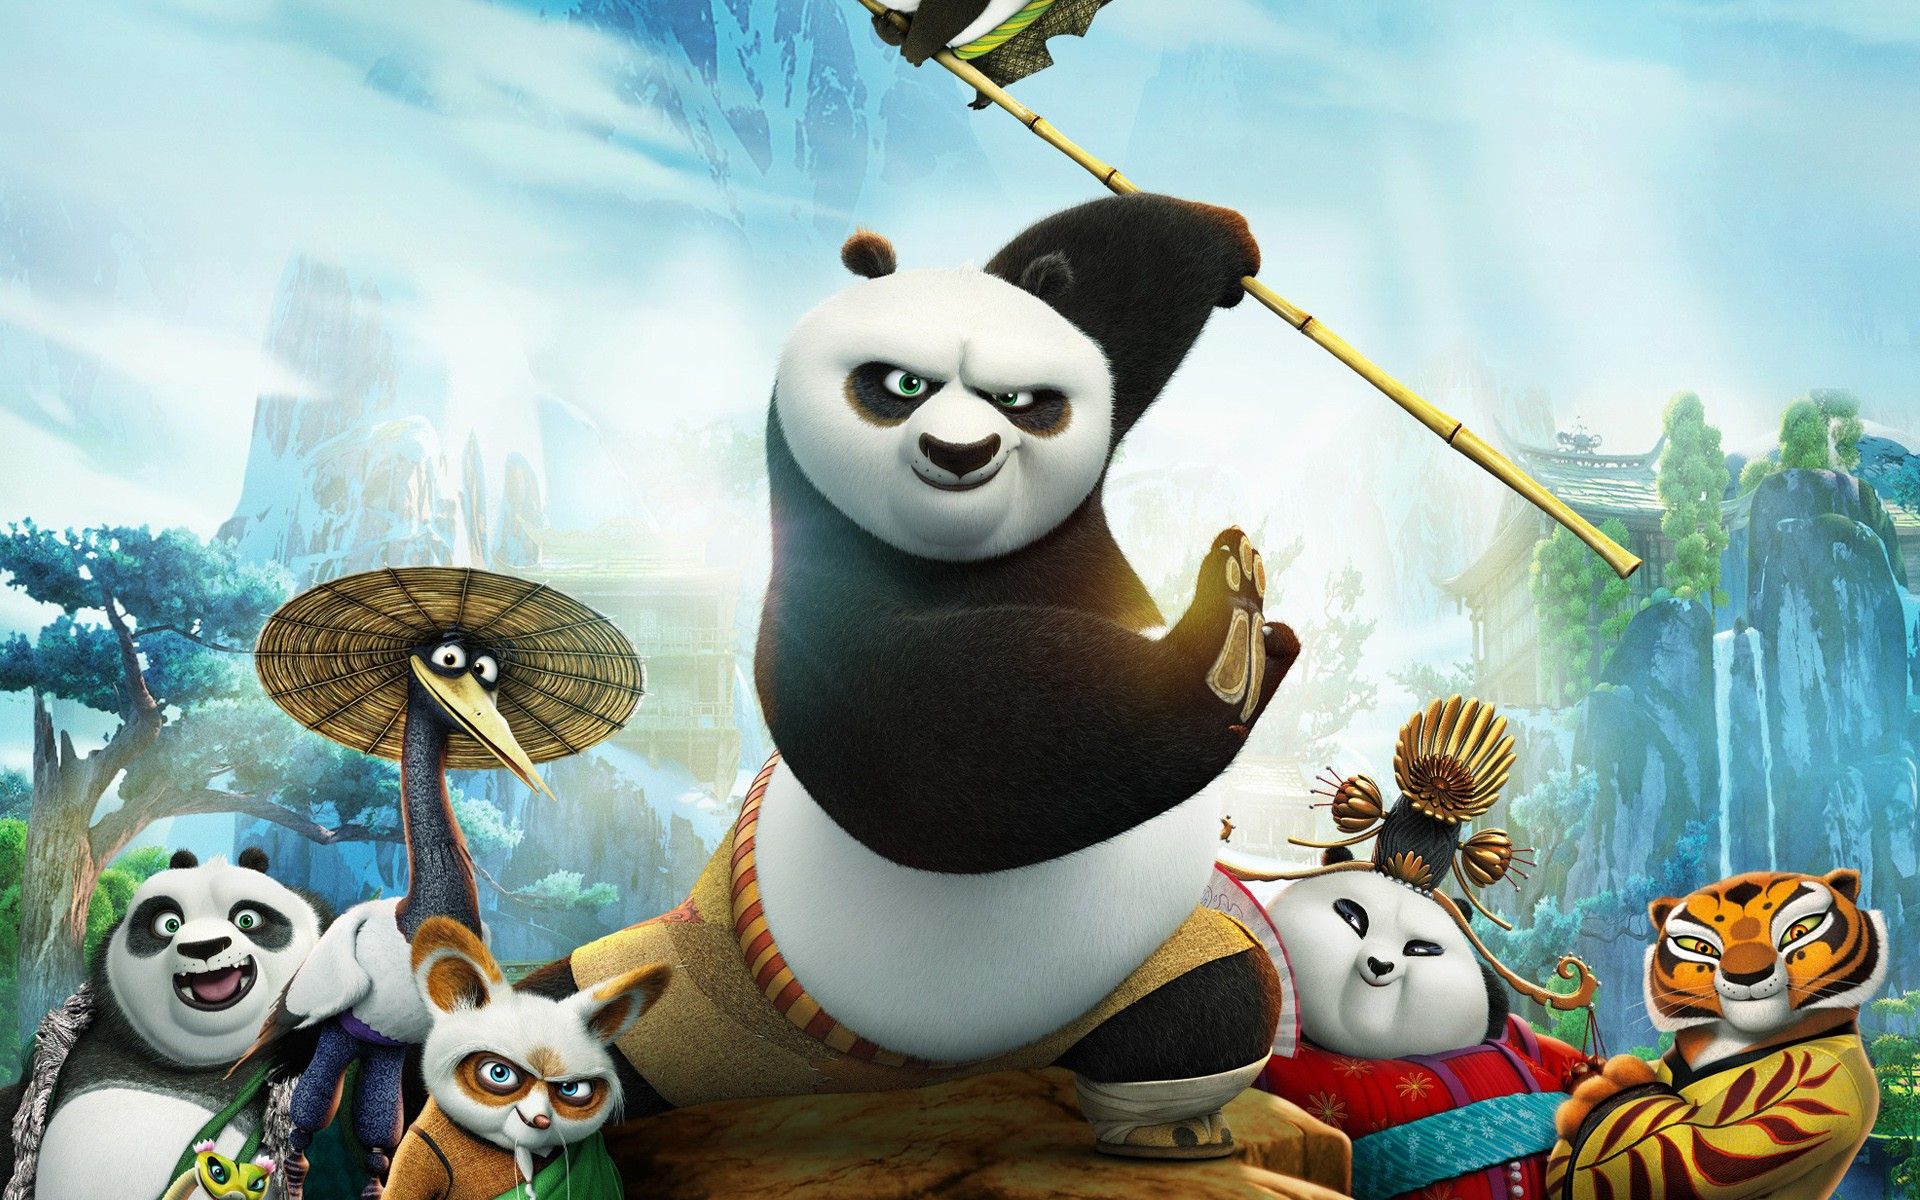 1920x1200 kung fu panda 3 movie 1080p resolution hd 4k wallpapers